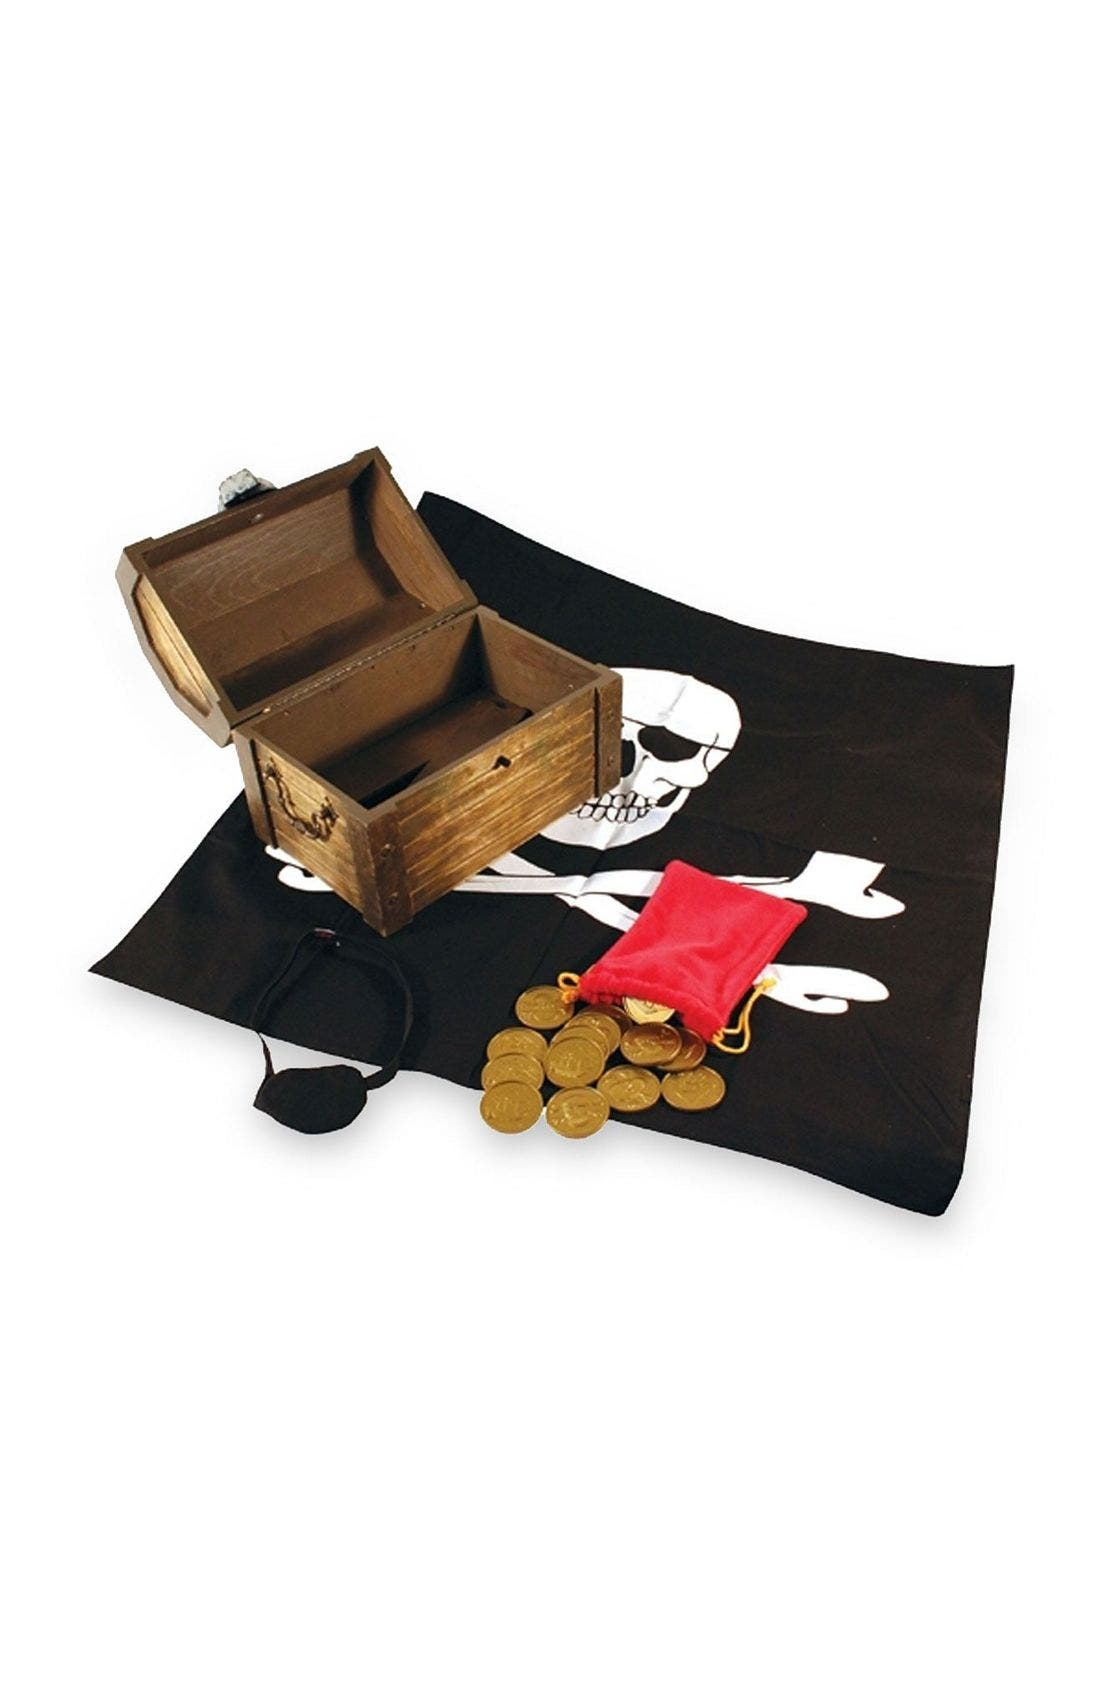 Alternate Image 1 Selected - Melissa & Doug Wooden Pirate Chest